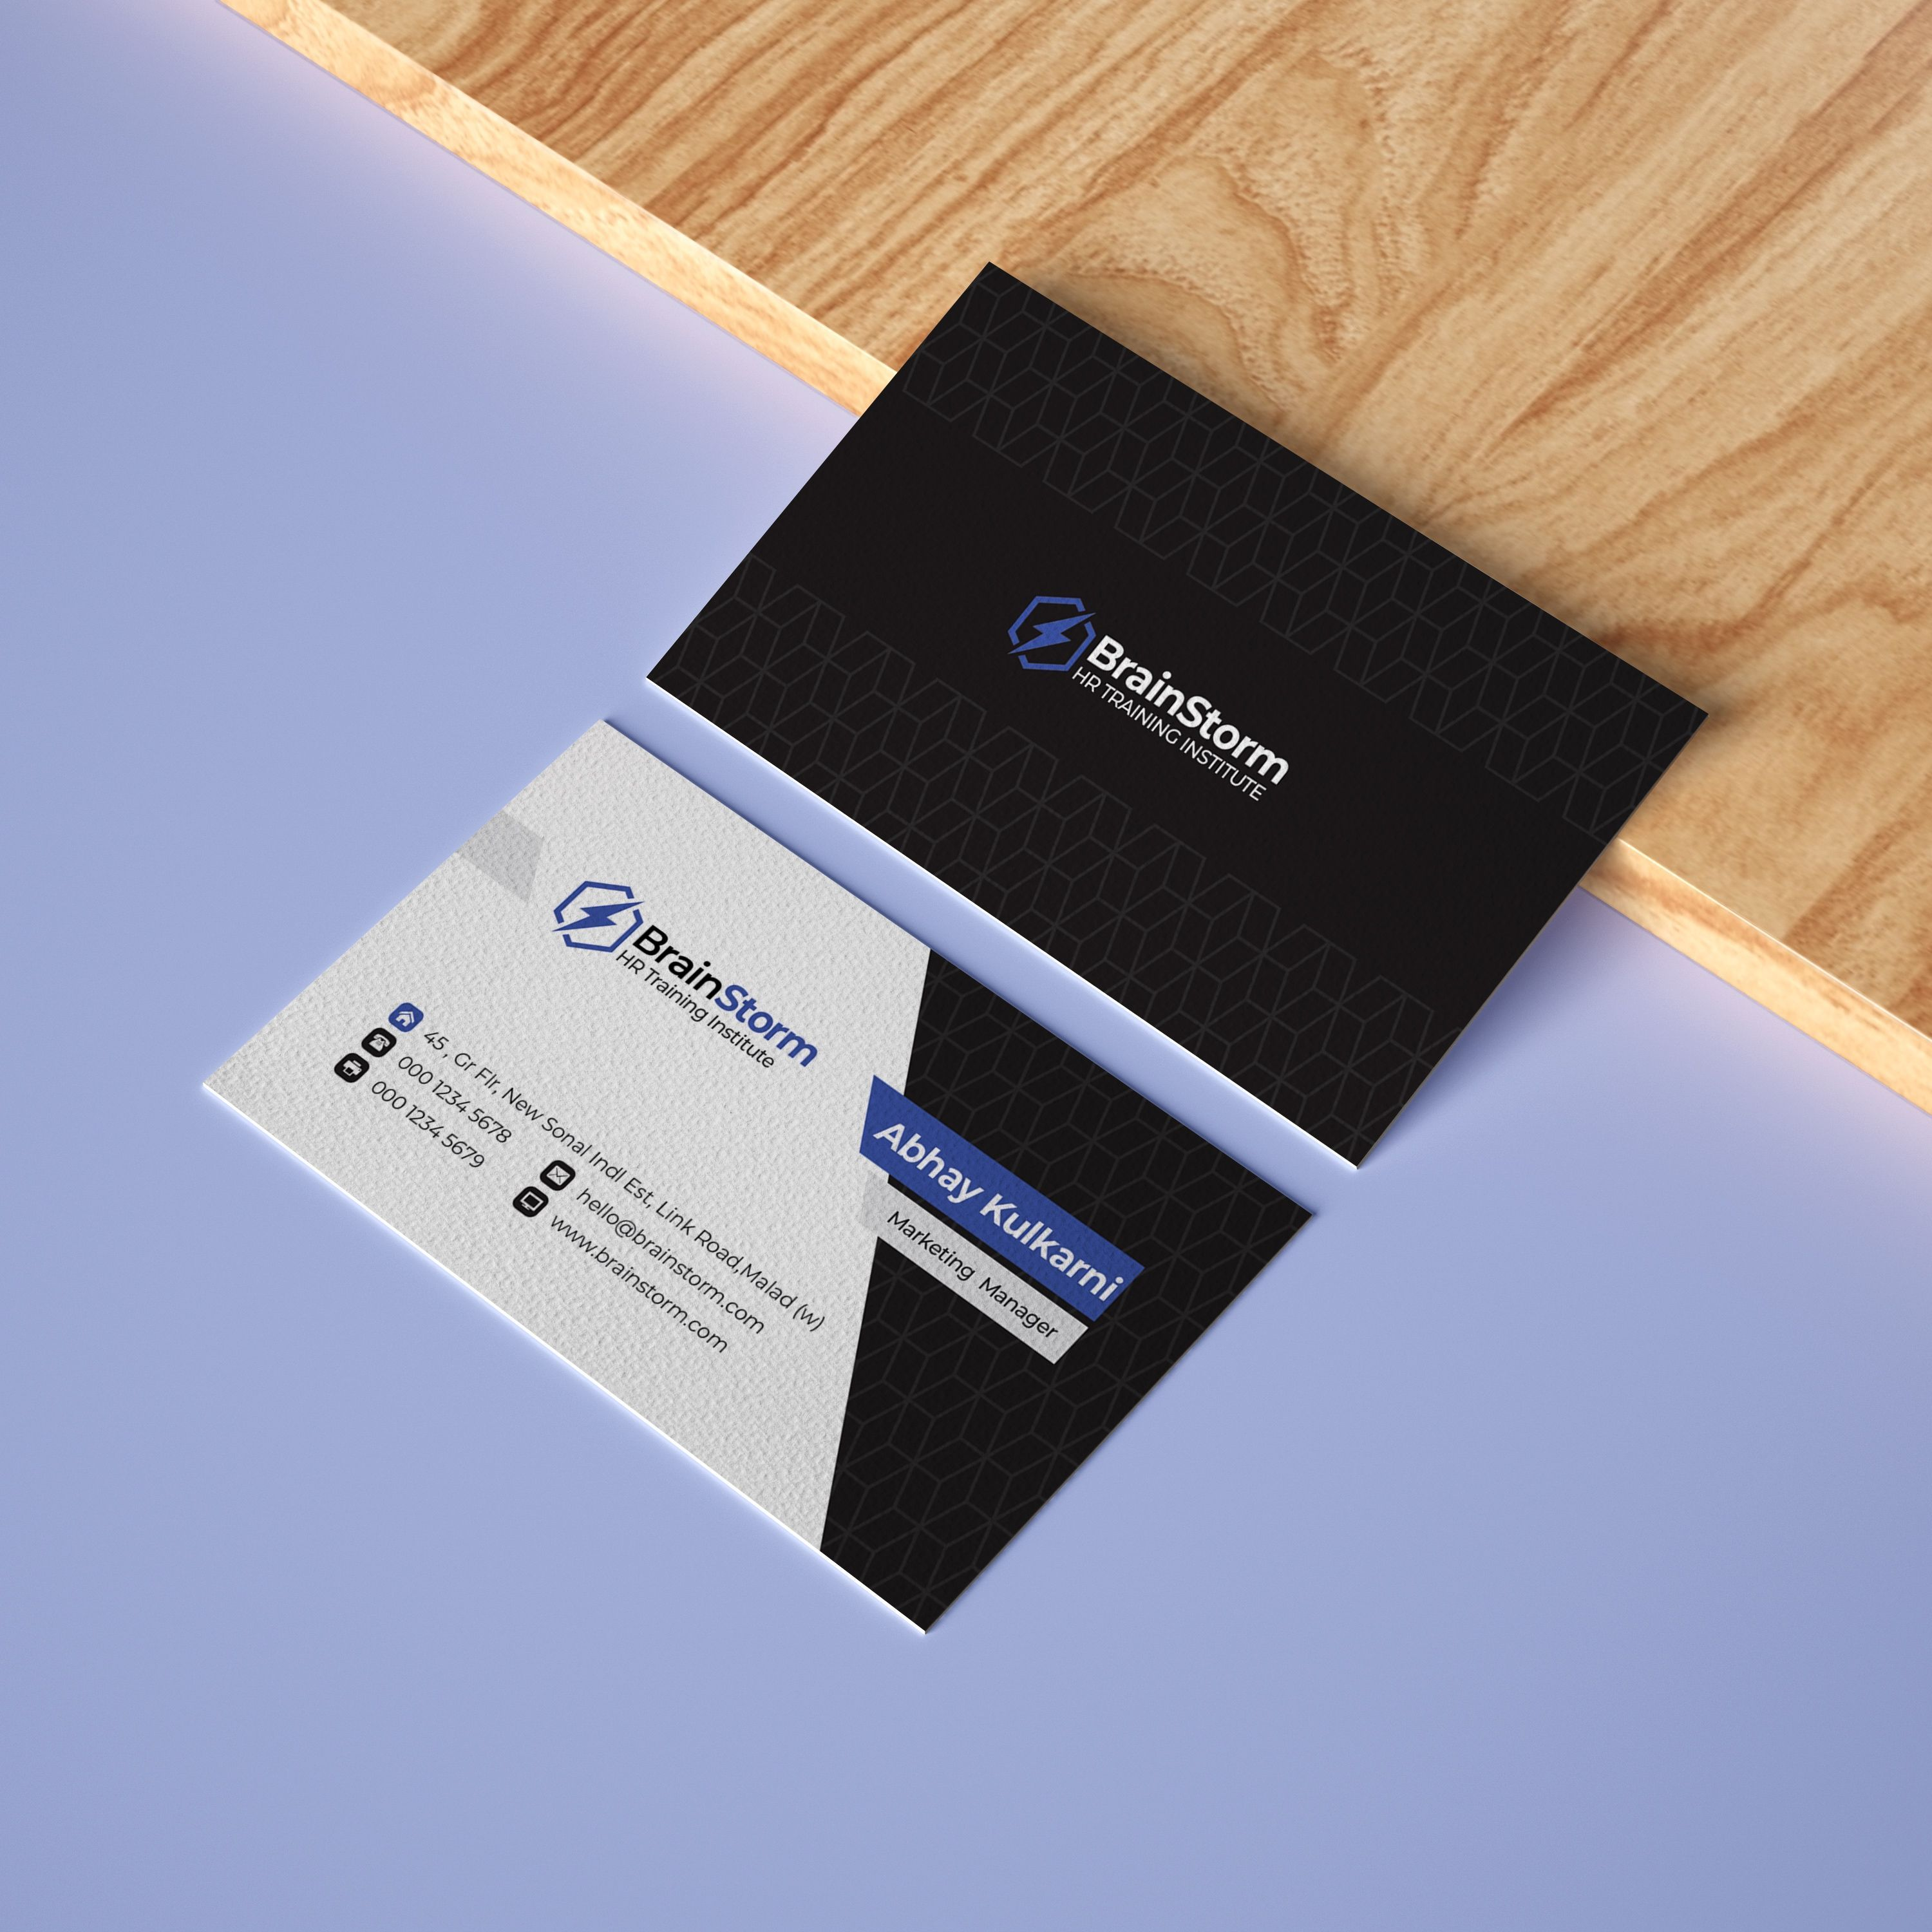 Create Your Exclusive Brand Image With Minimalist Business Card Designed By Quinte Marketing Business Card Digital Marketing Business Minimalist Business Cards